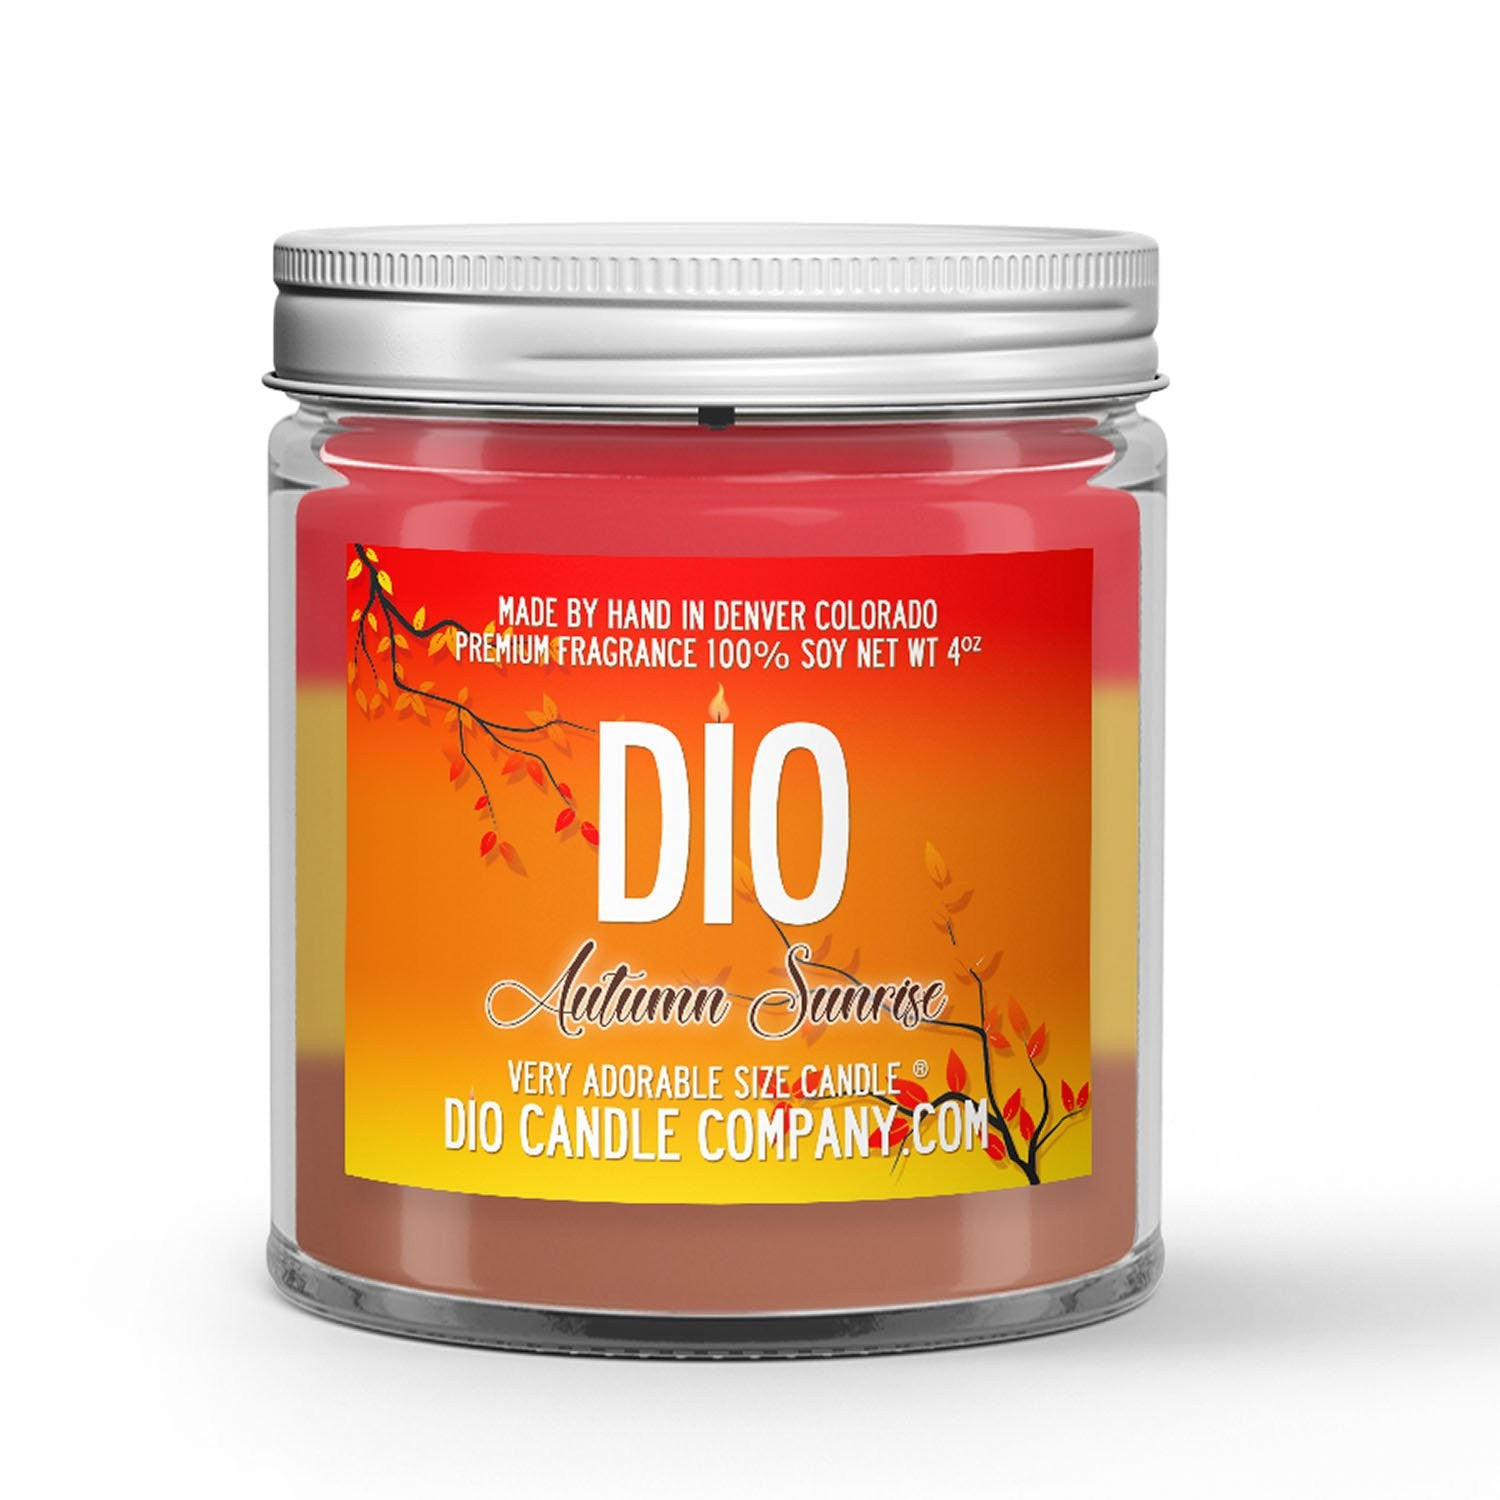 Autumn Sunrise Candle - Spiced Cranberry Apple Marmalade - 4oz Very Adorable Size Candle® - Dio Candle Company